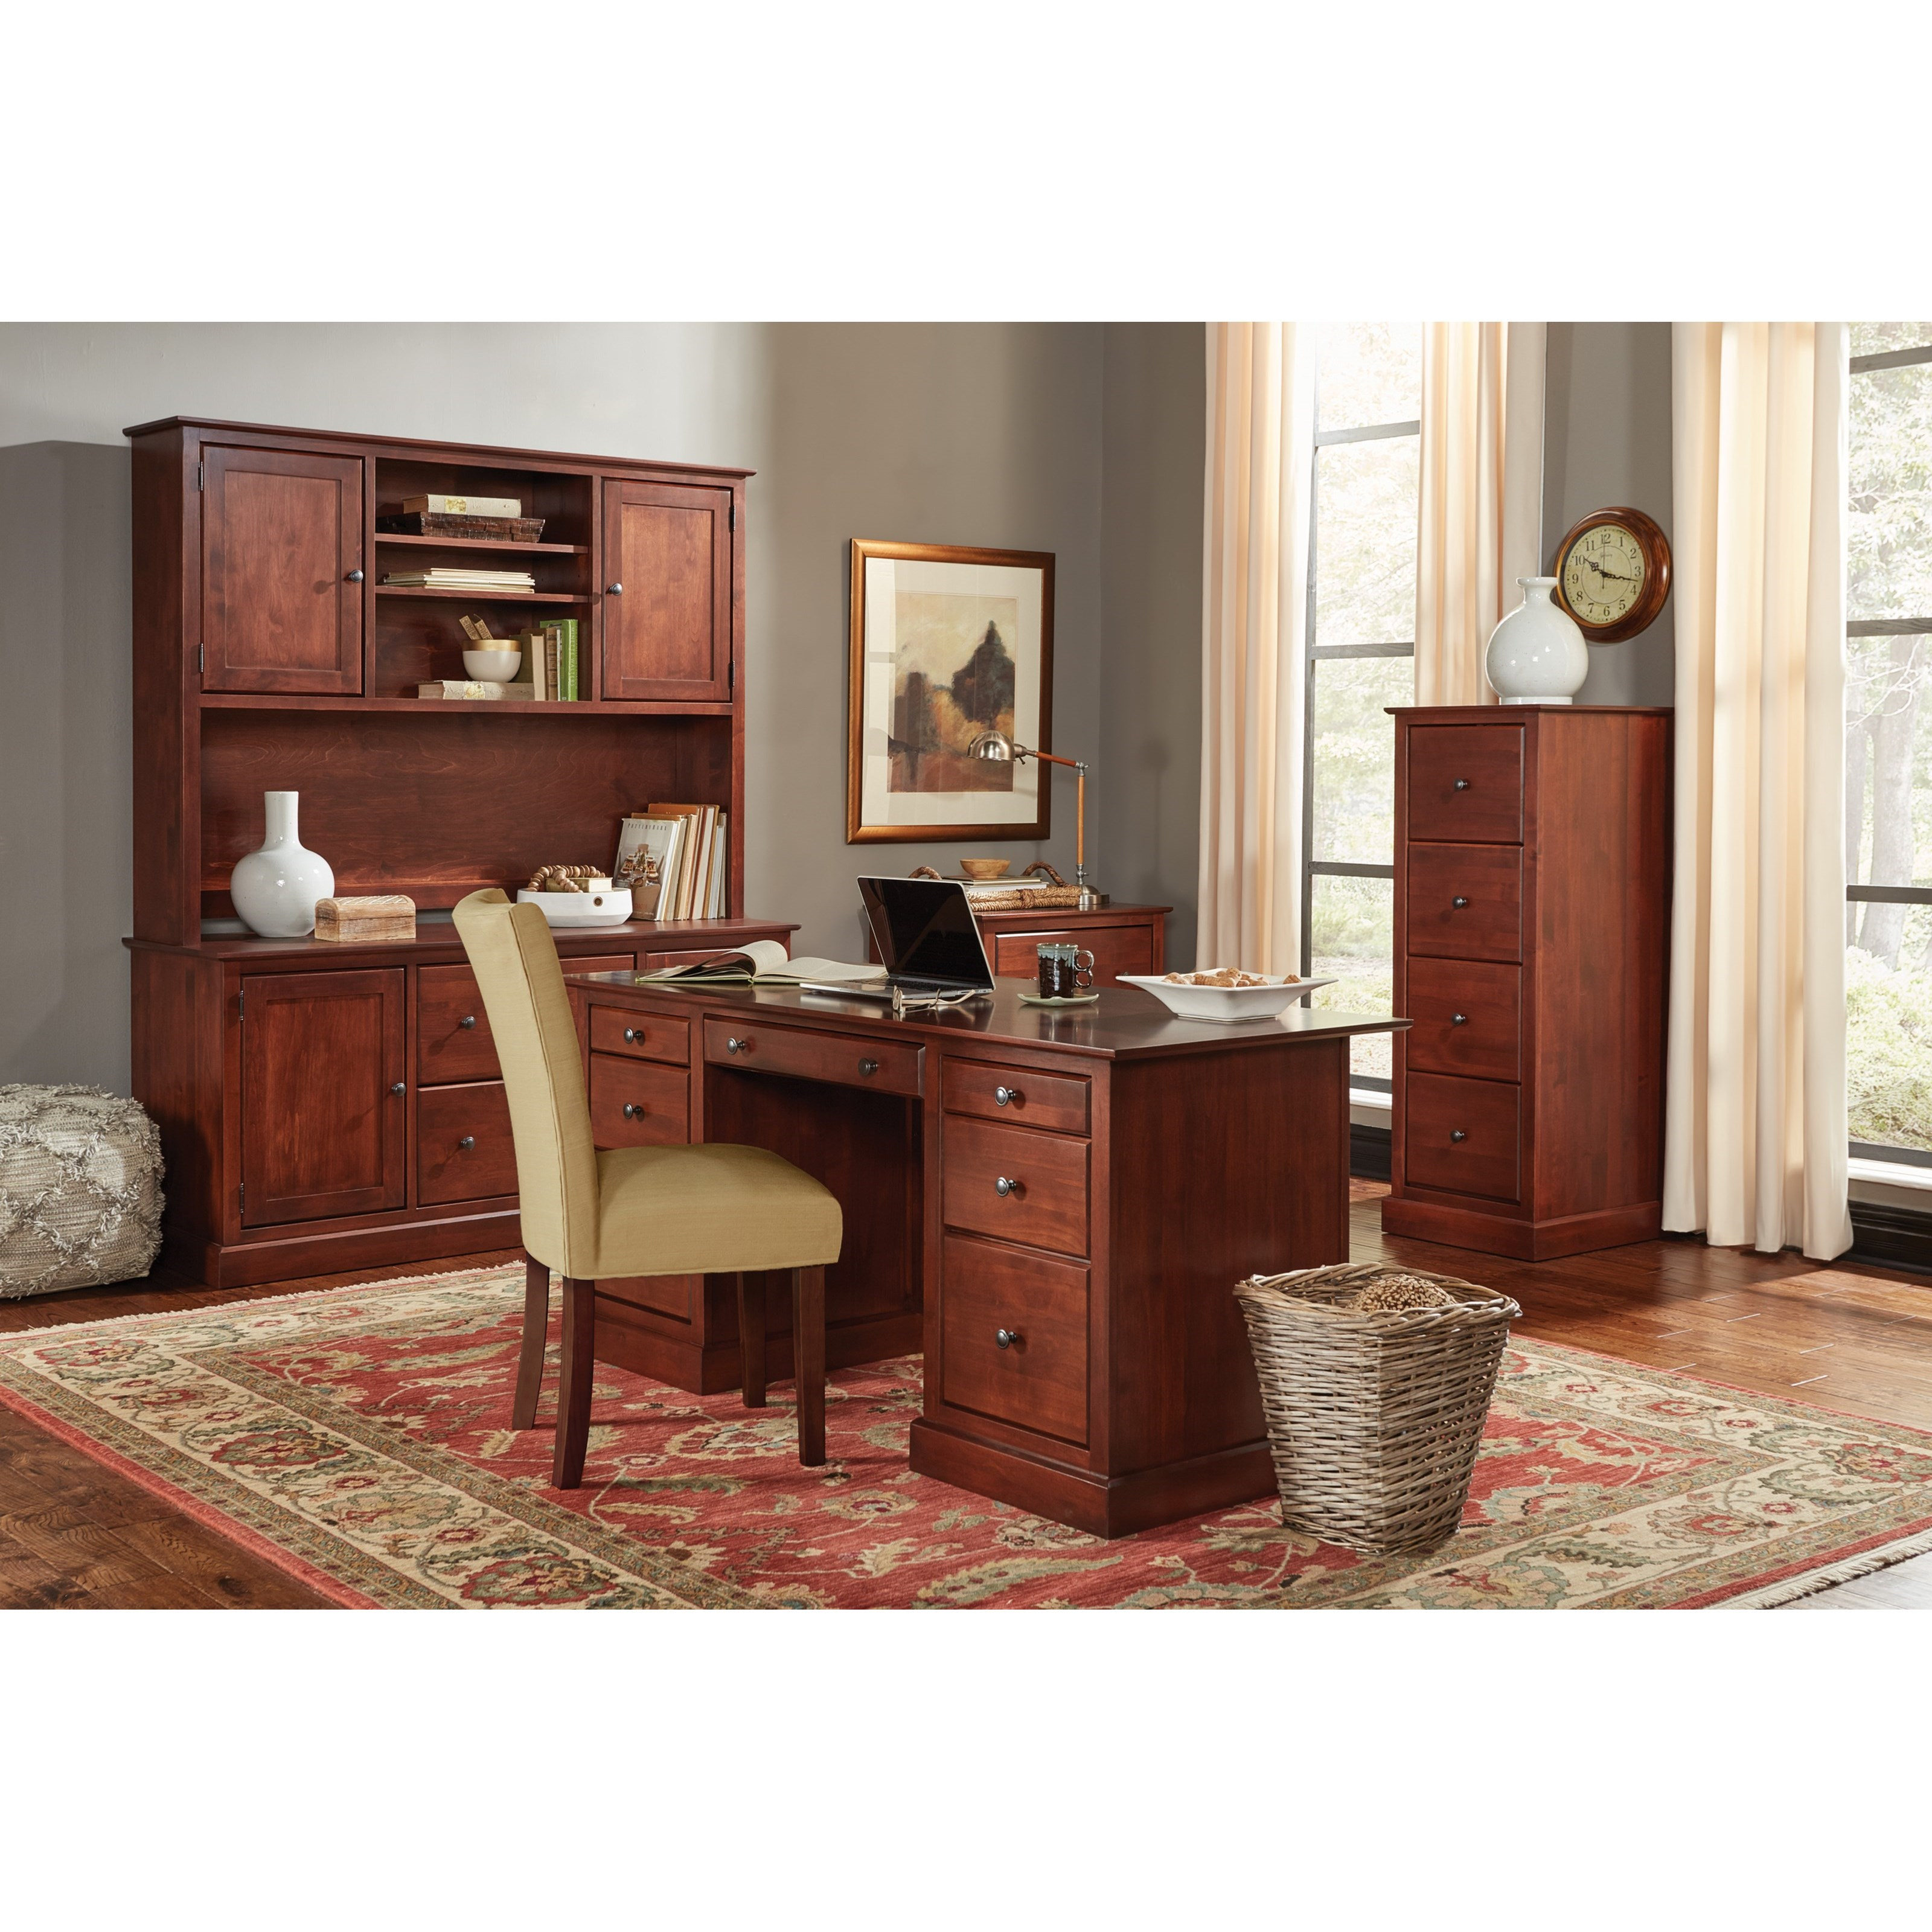 Executive Home Office Executive Home Office Group by Amish Traditions at Sprintz Furniture